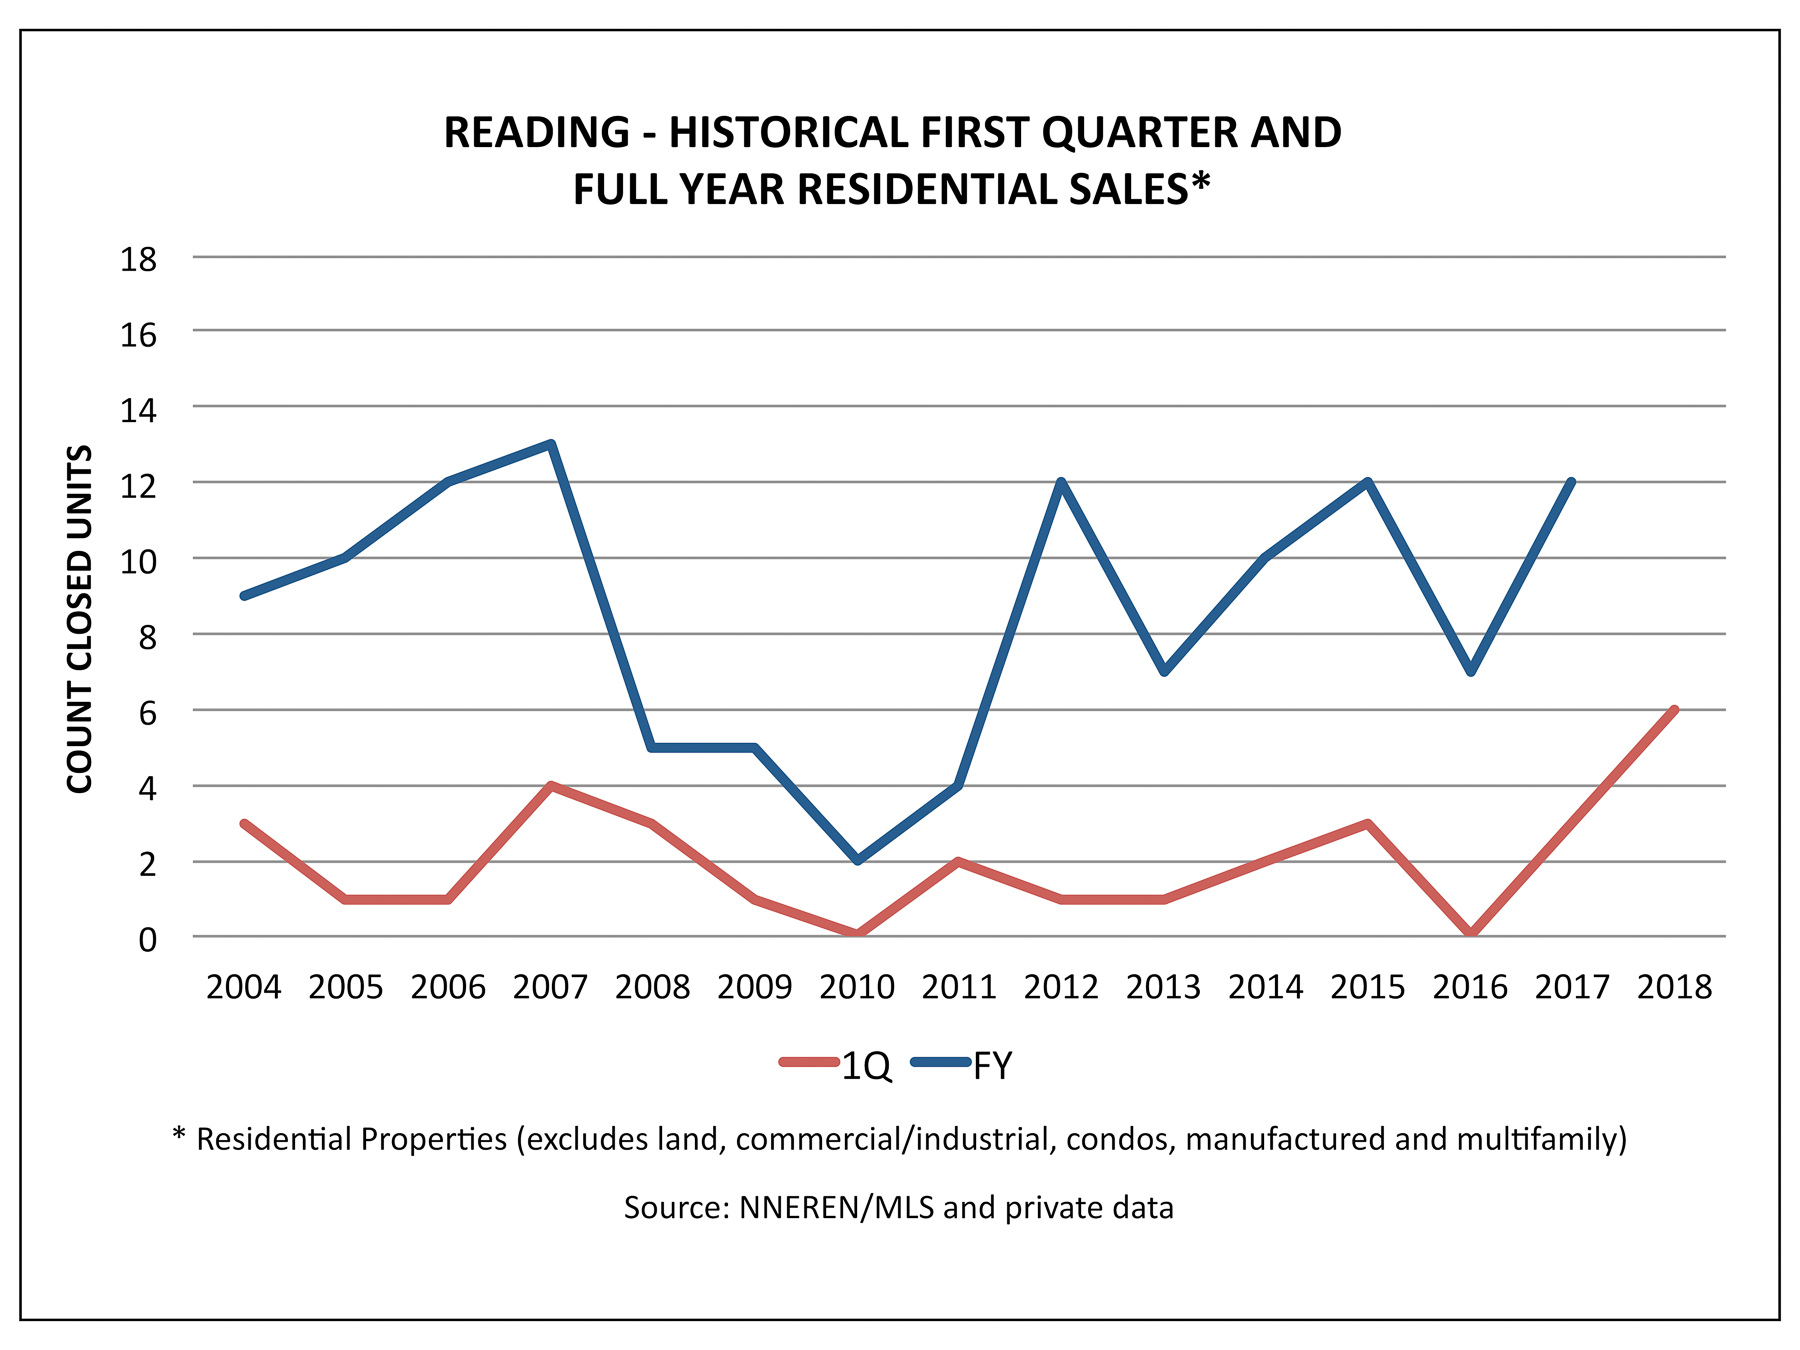 Reading VT Real Estate - Historical 1Q and FY Home Sales